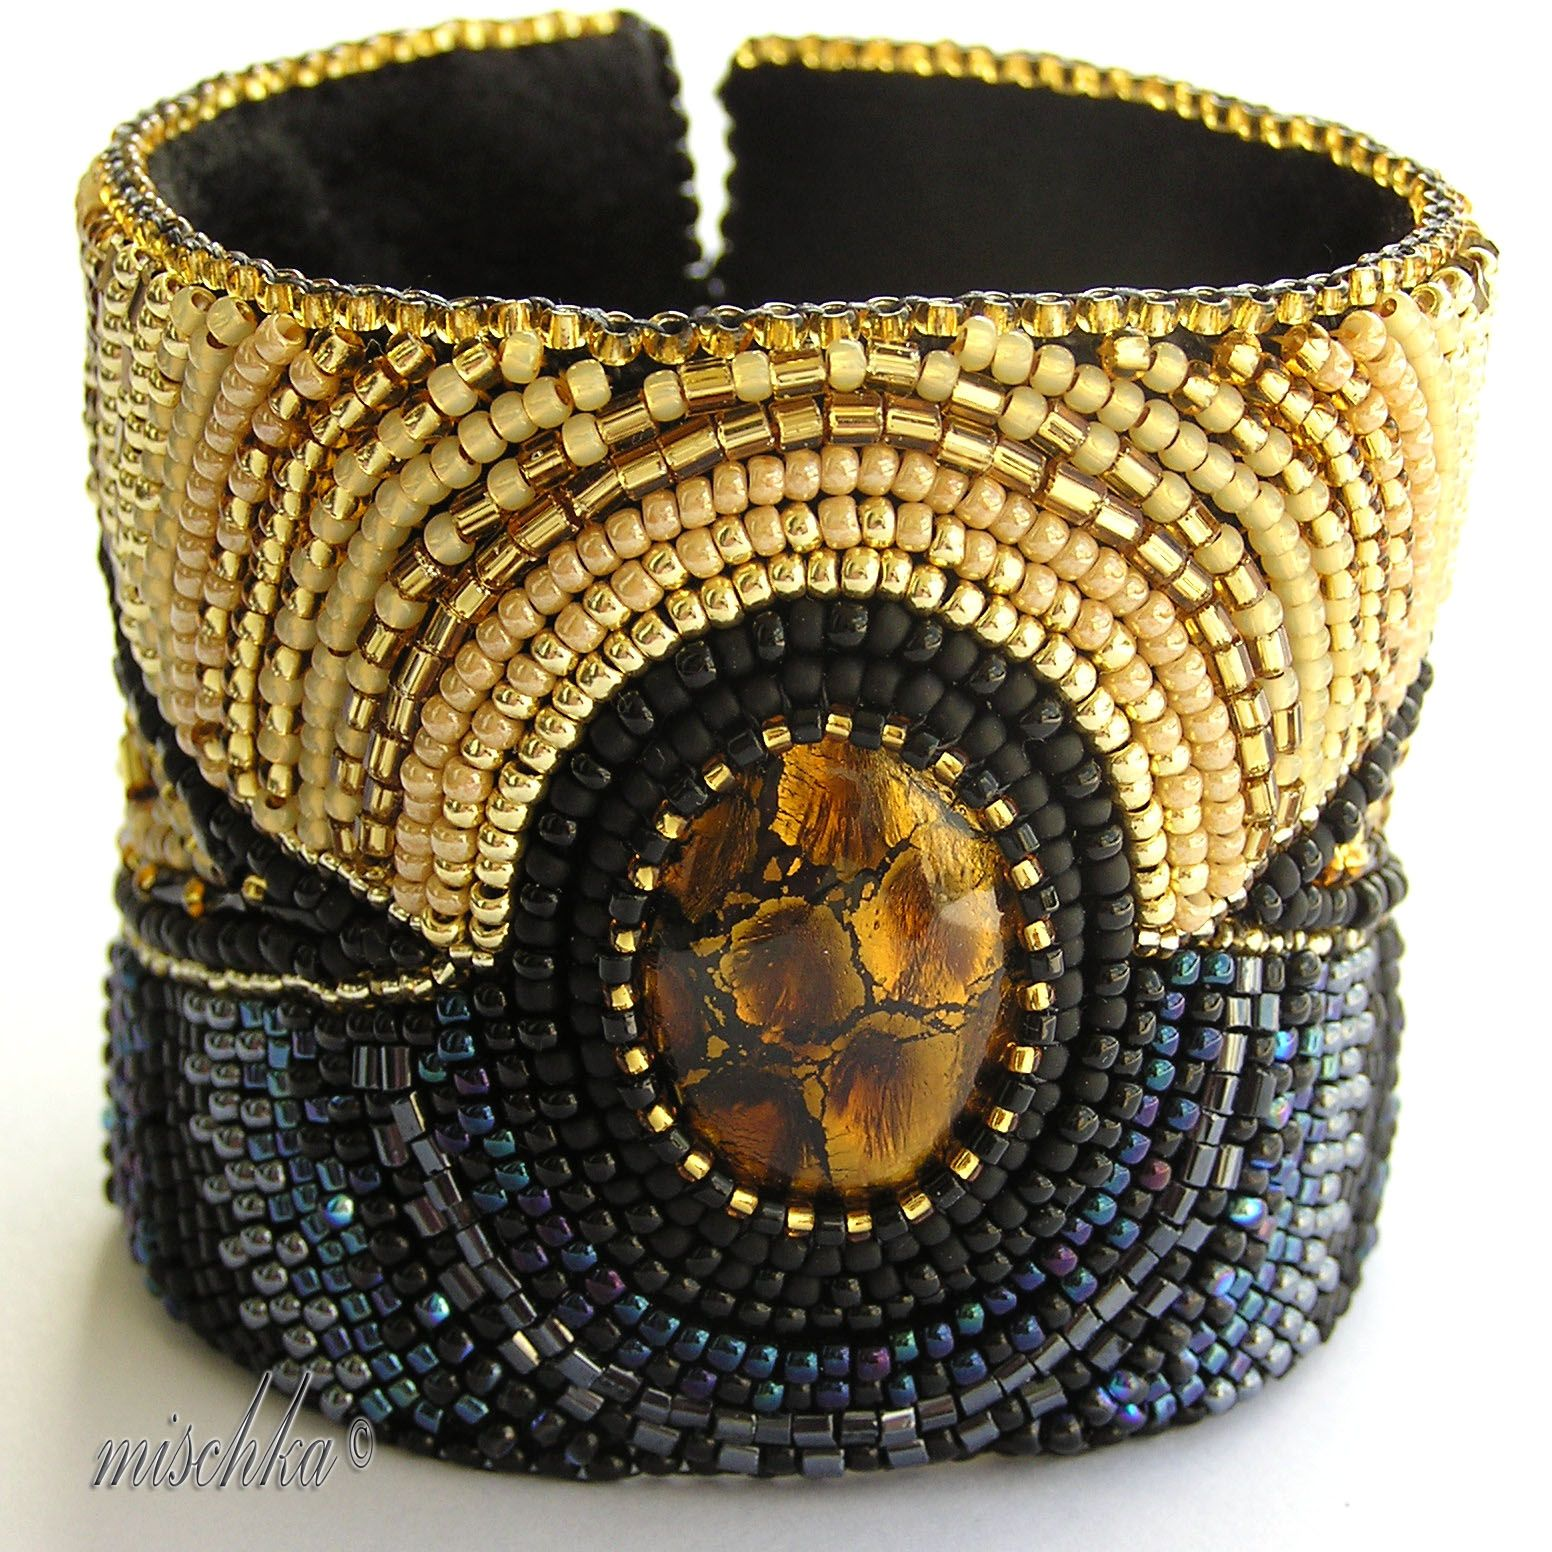 This here is one nice looking cuff.   Mischka's Fantastic Beadweaving